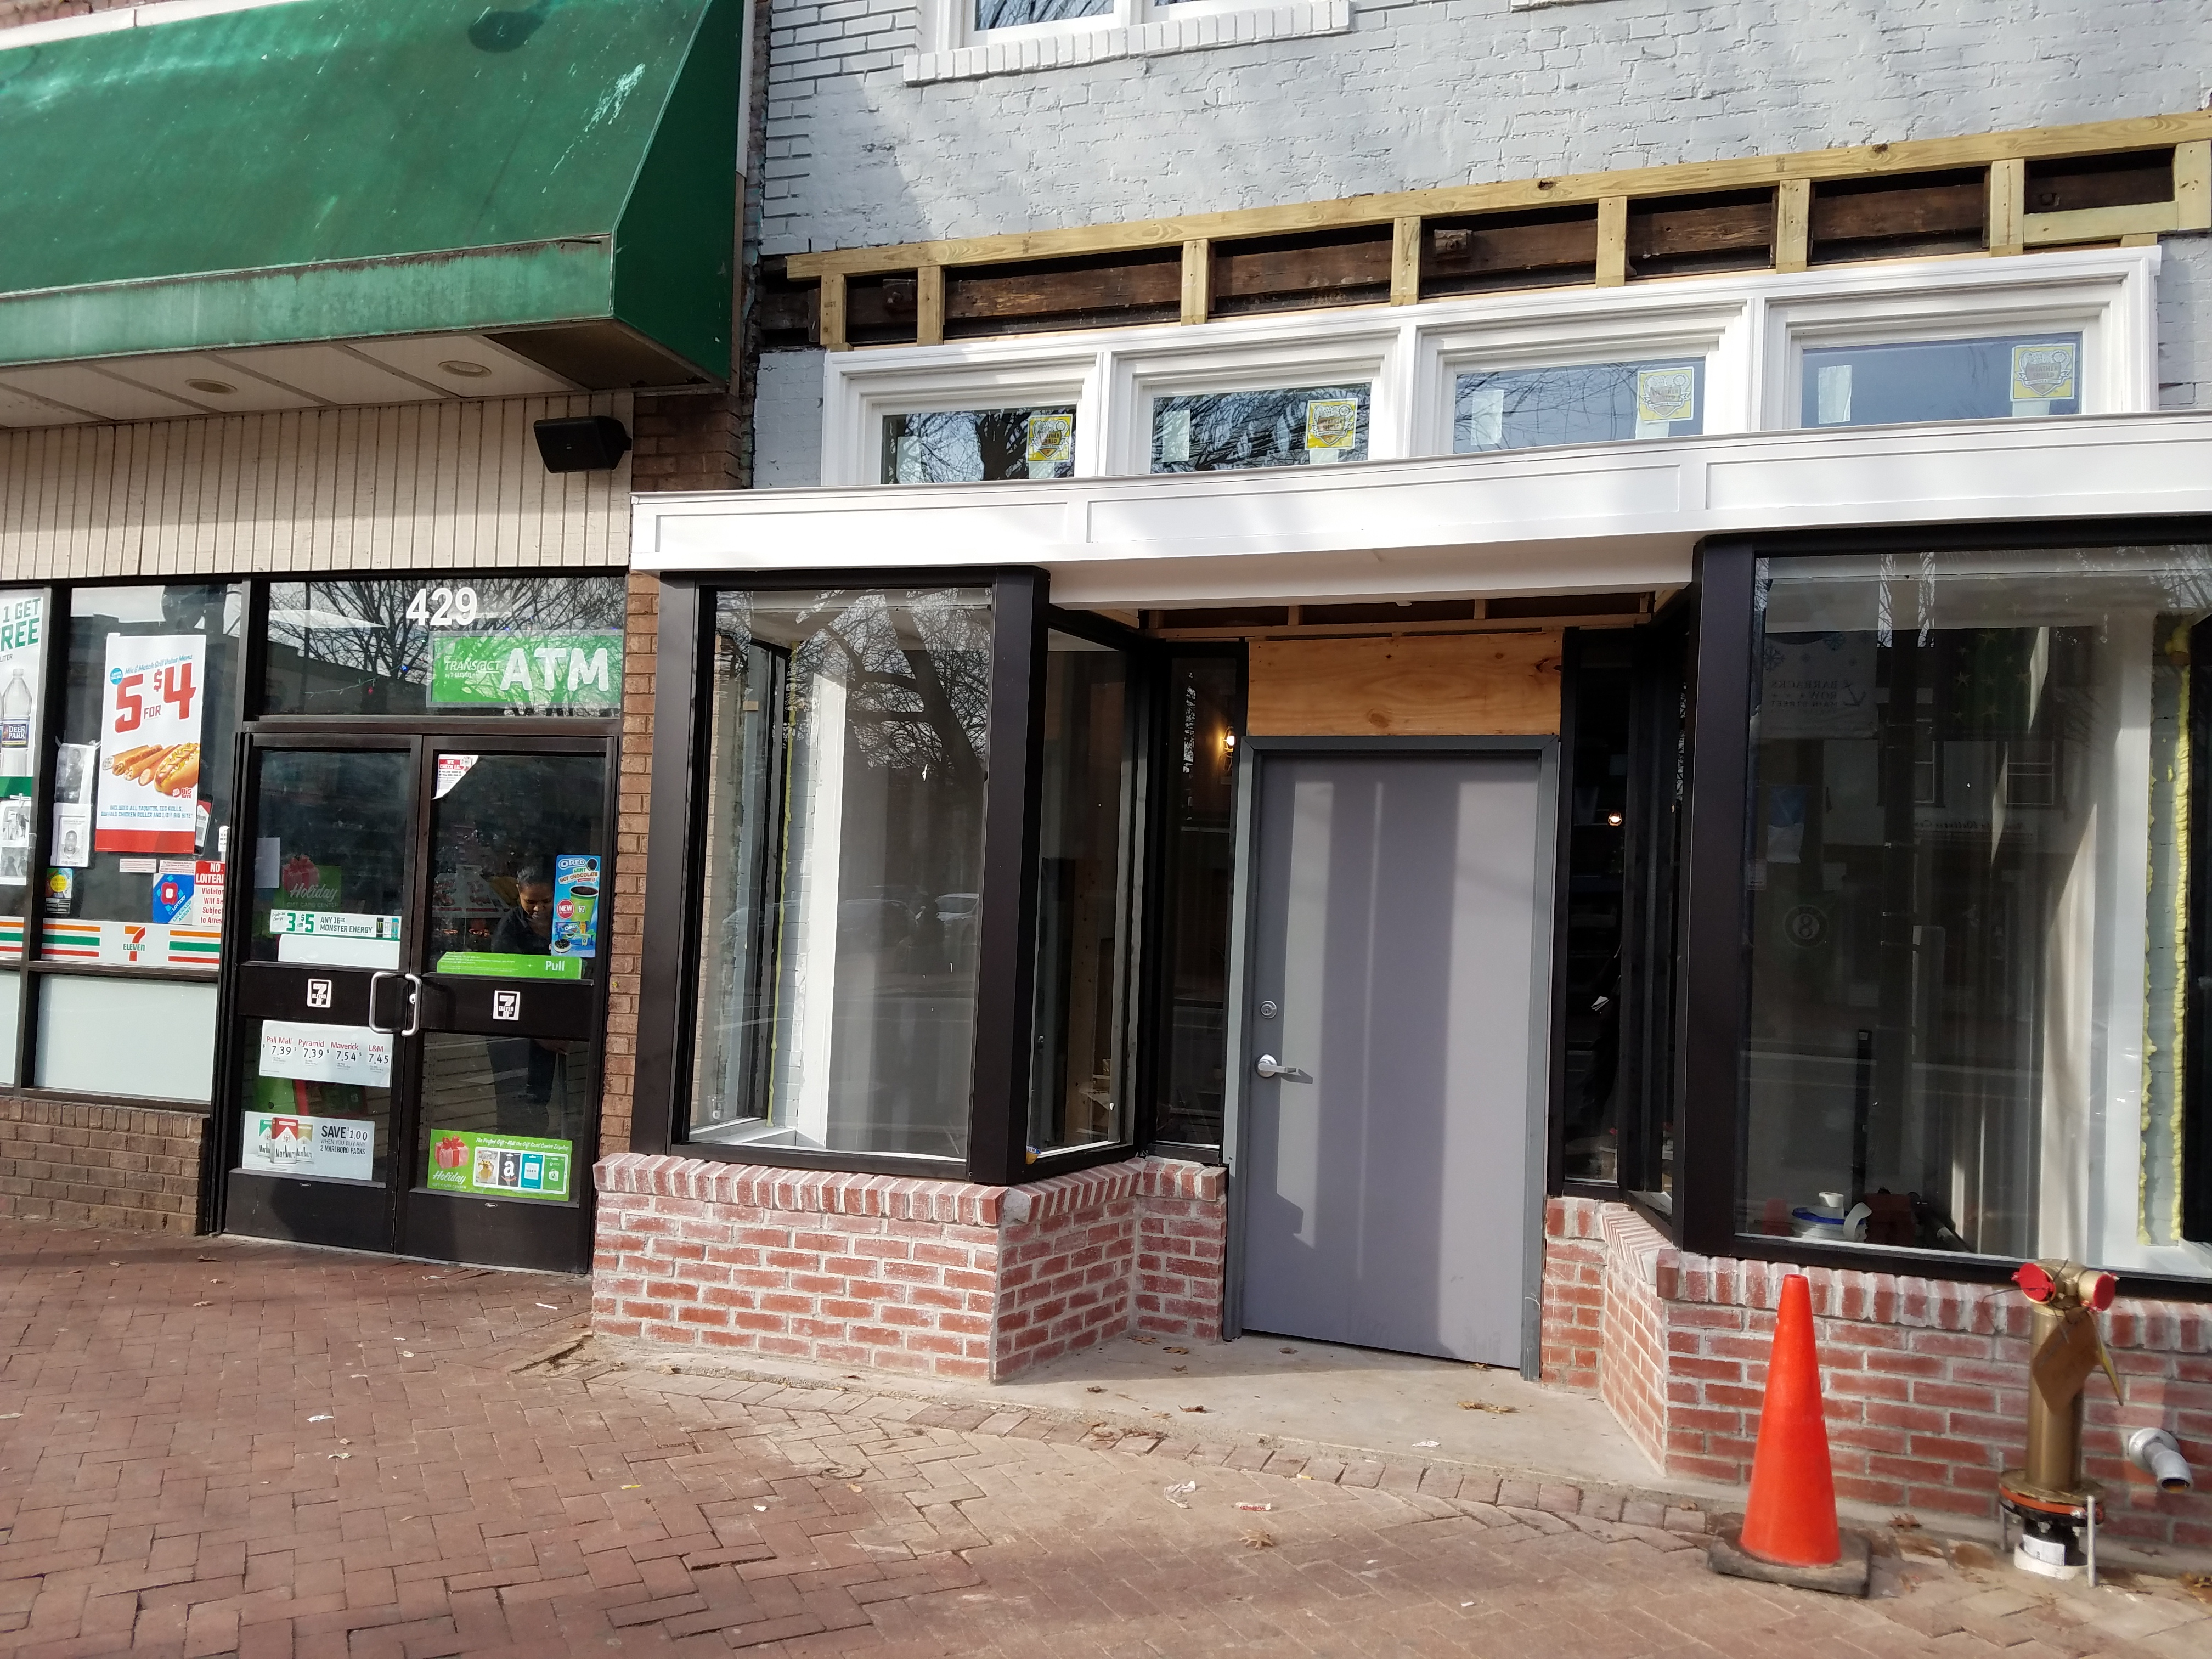 Sources Tell Capitol Hill Corner That The Former Verizon Outlet Next To Barracks Row 7 11 At 8th And E Streets Is Destined Become A Barber Shop